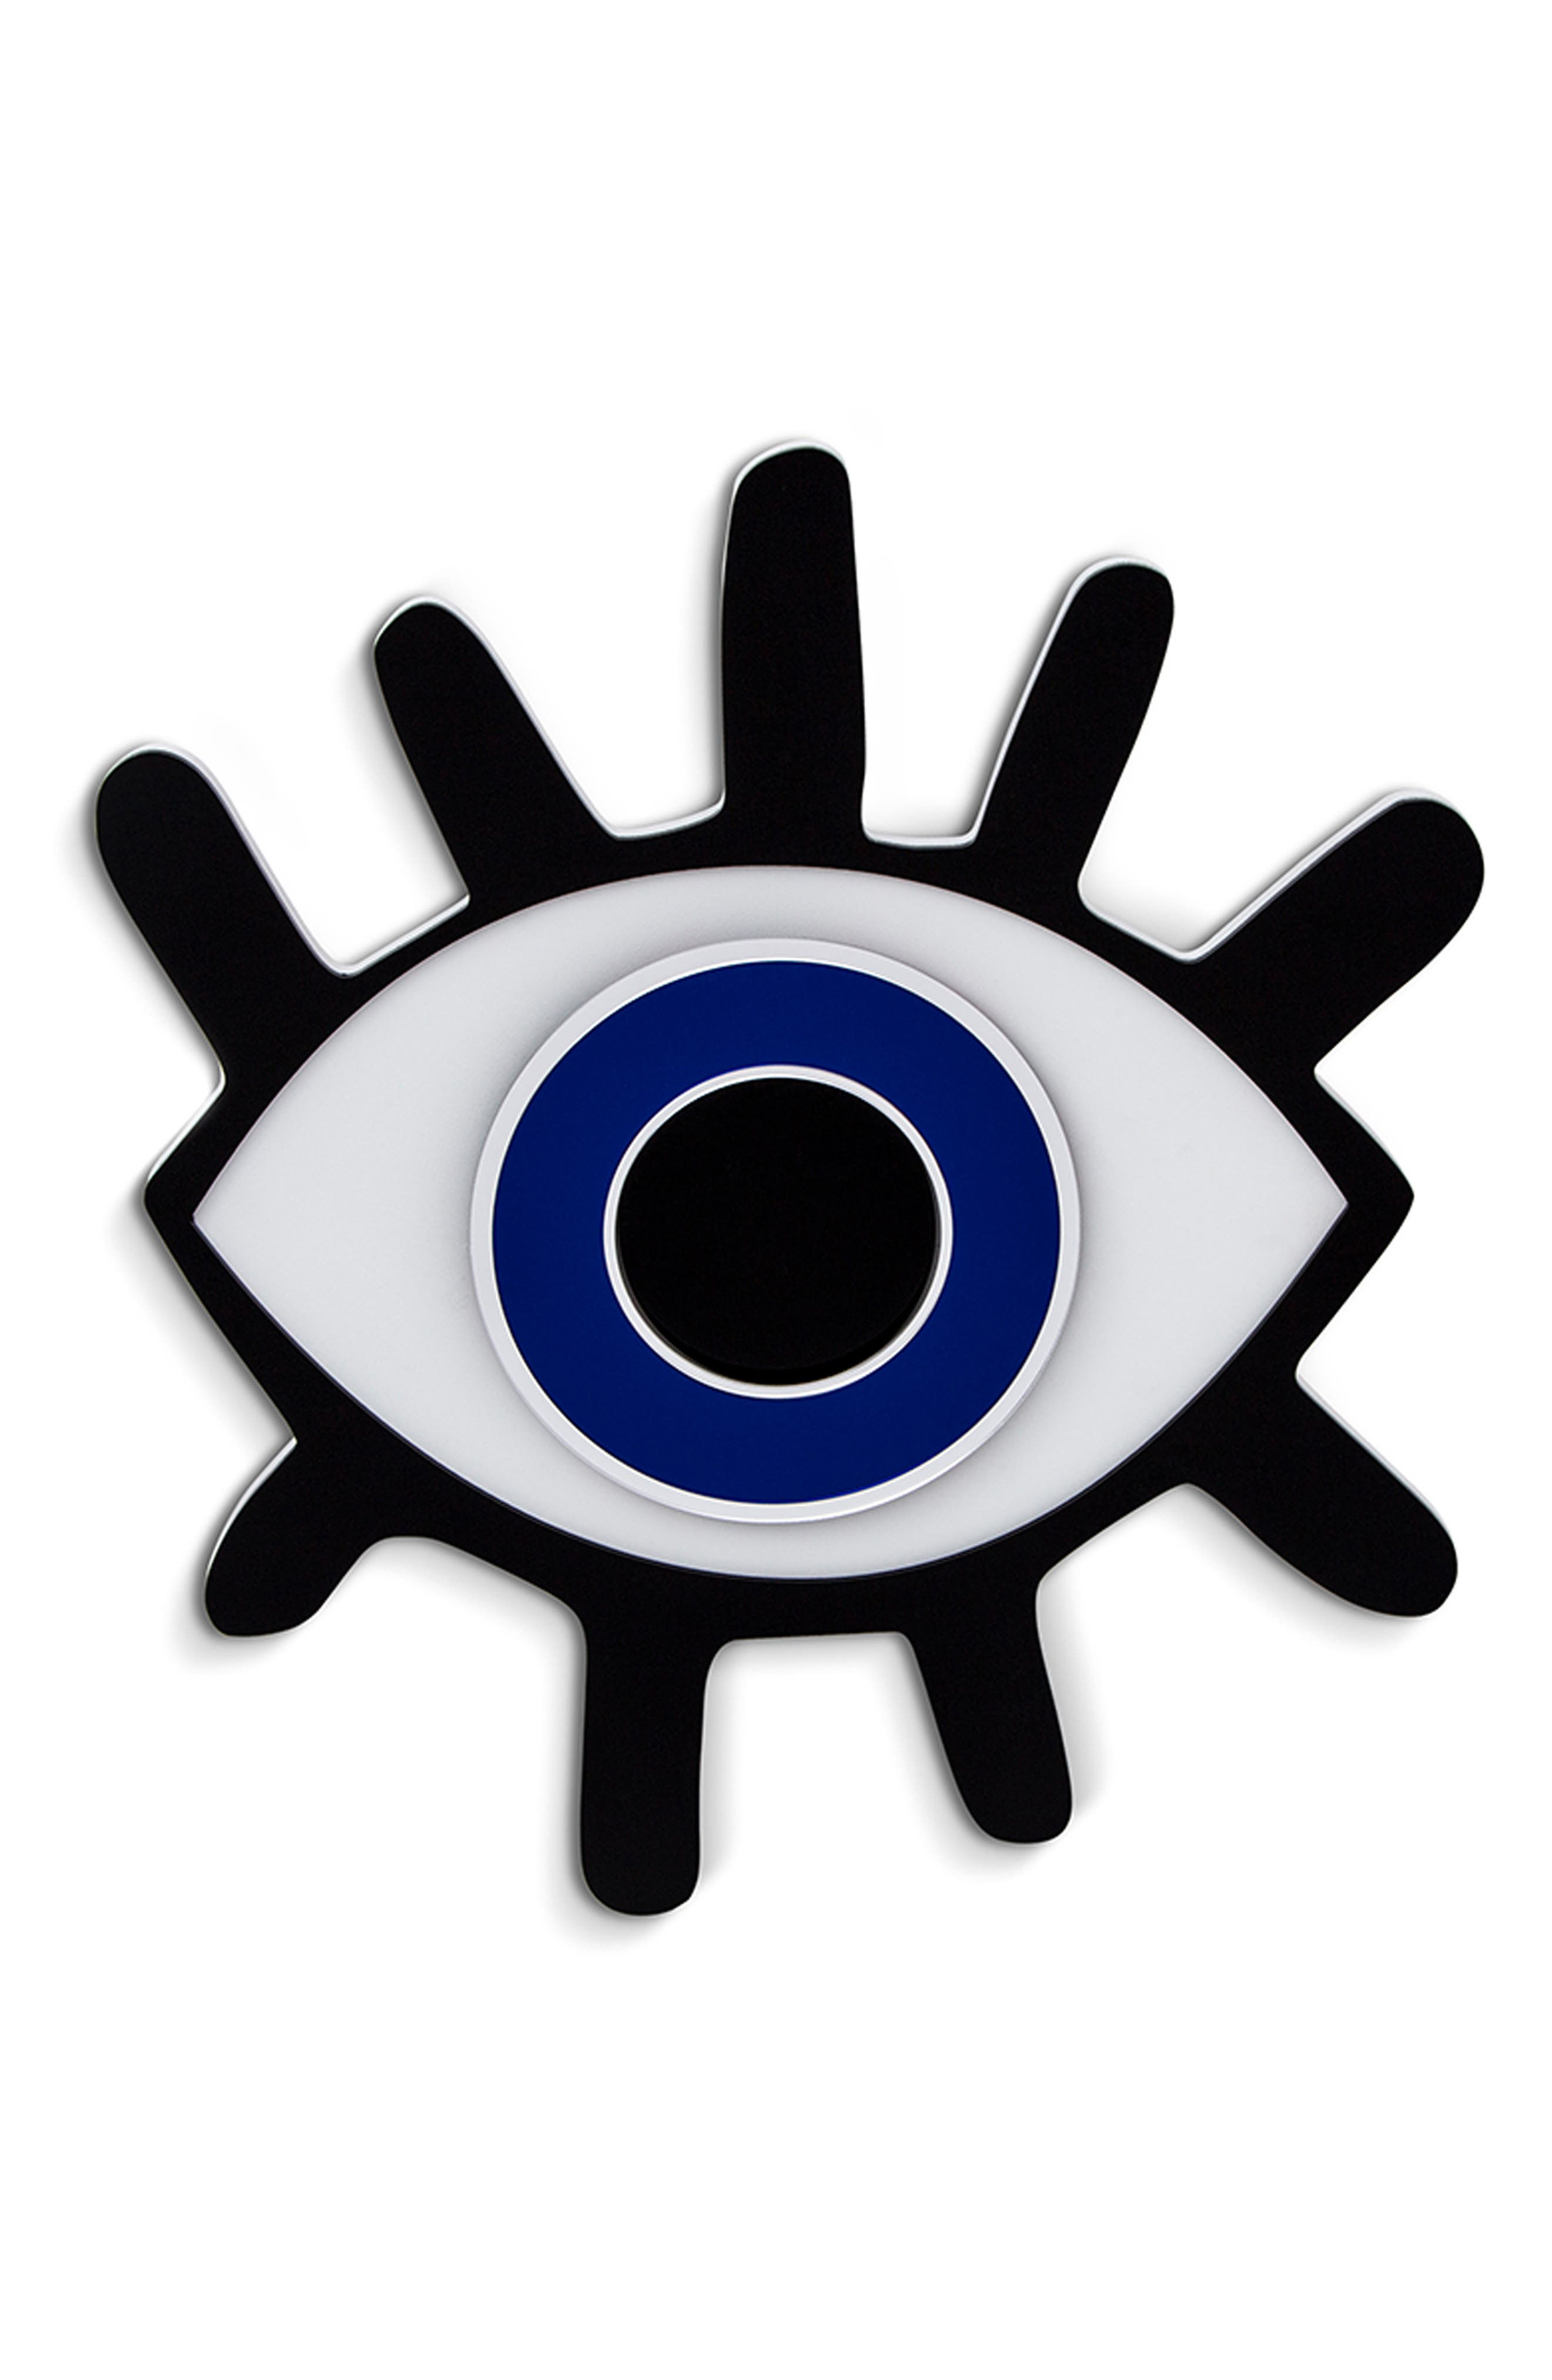 Lashed Evil Eye Wall Art, Main, color, BLUE BLACK AND WHITE